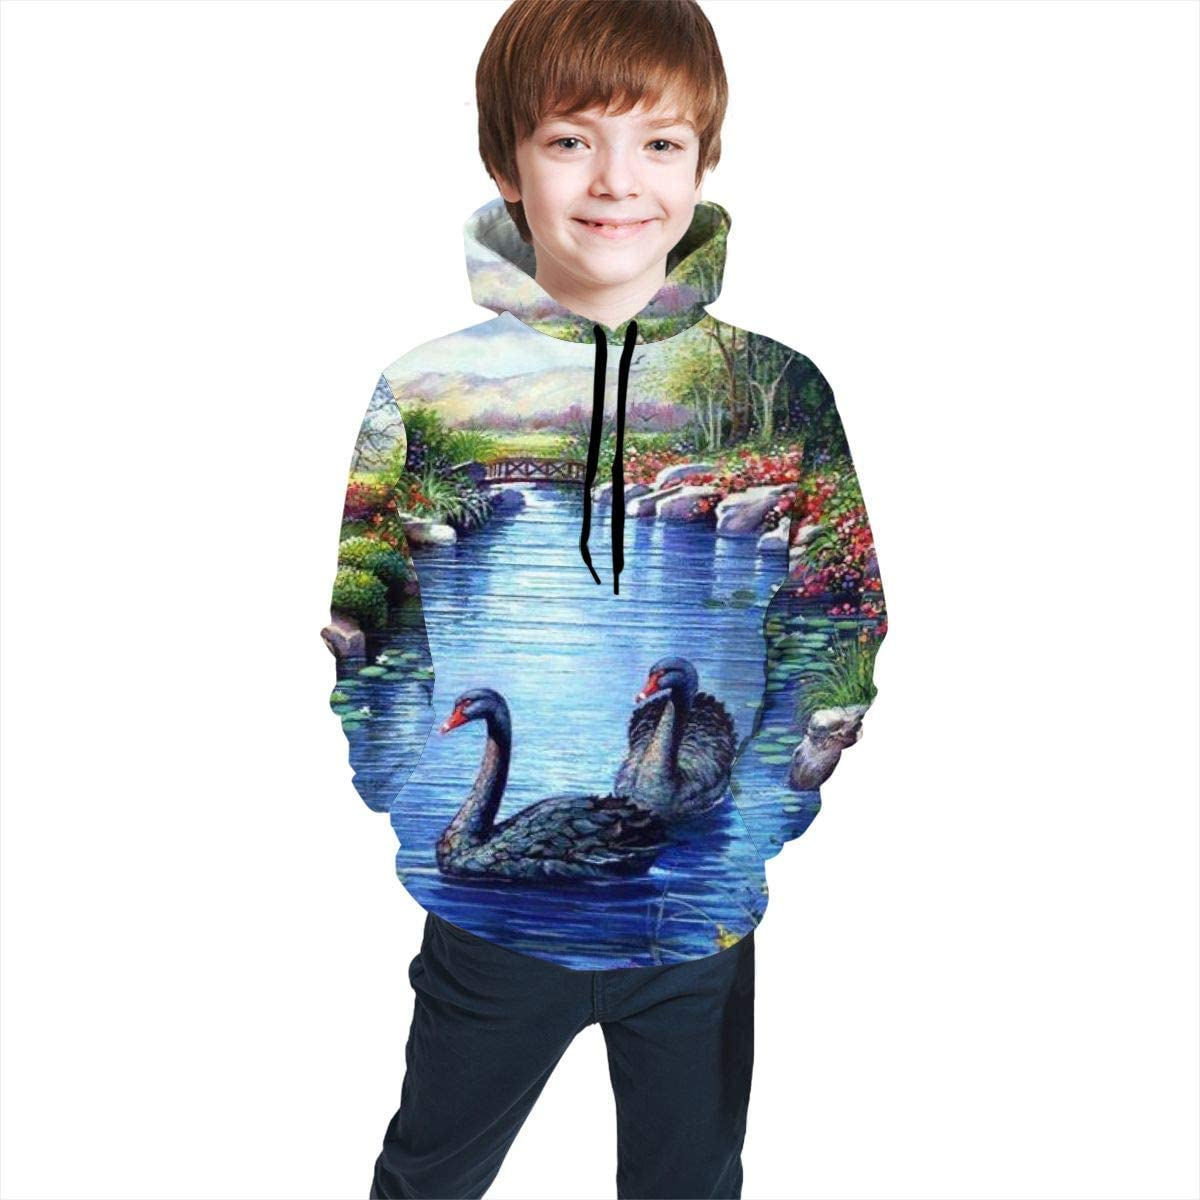 Kjiurhfyheuij Teen Pullover Hoodies with Pocket Swans Trees Soft Fleece Hooded Sweatshirt for Youth Teens Kids Boys Girls